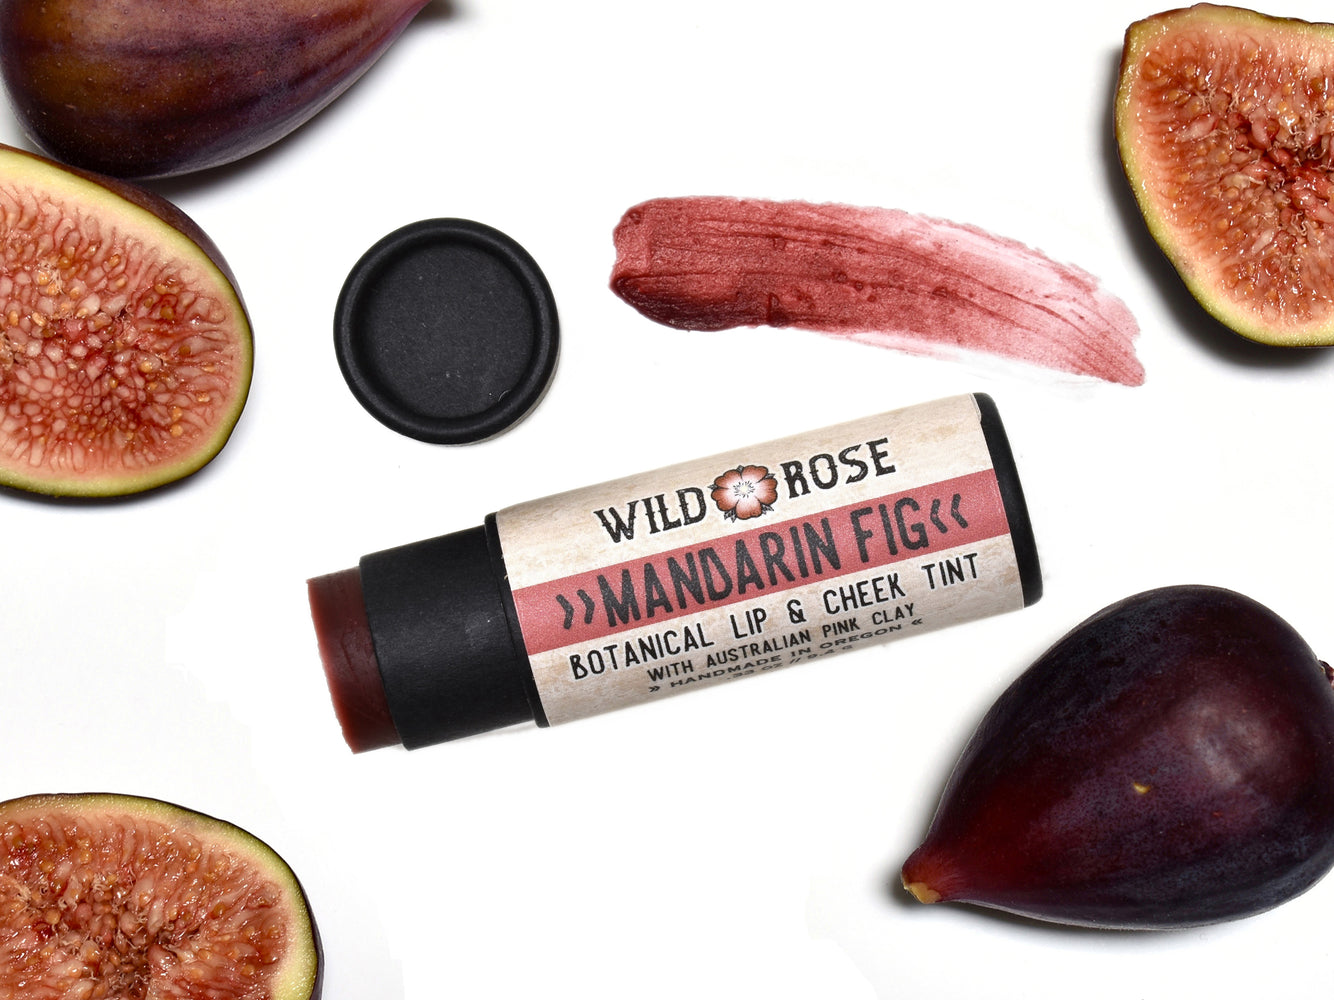 Mandarin Fig - Botanical Lip & Cheek Tint